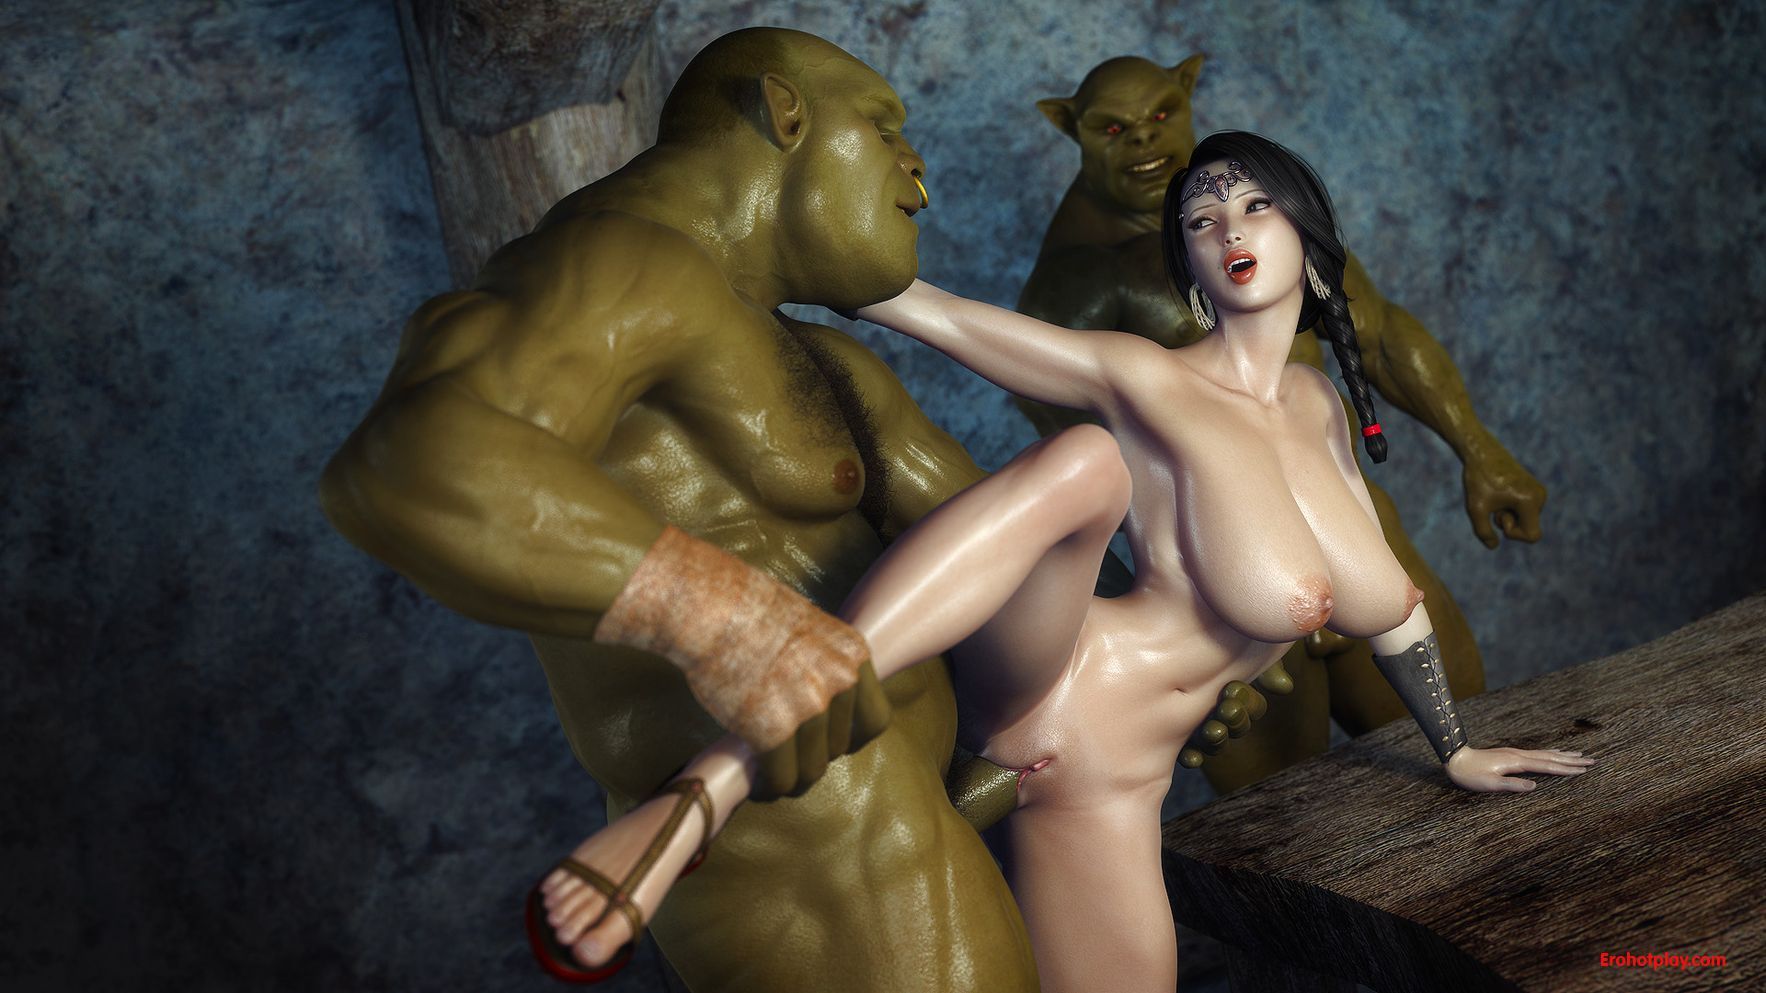 Knight girl fuck orc 3d nude whore